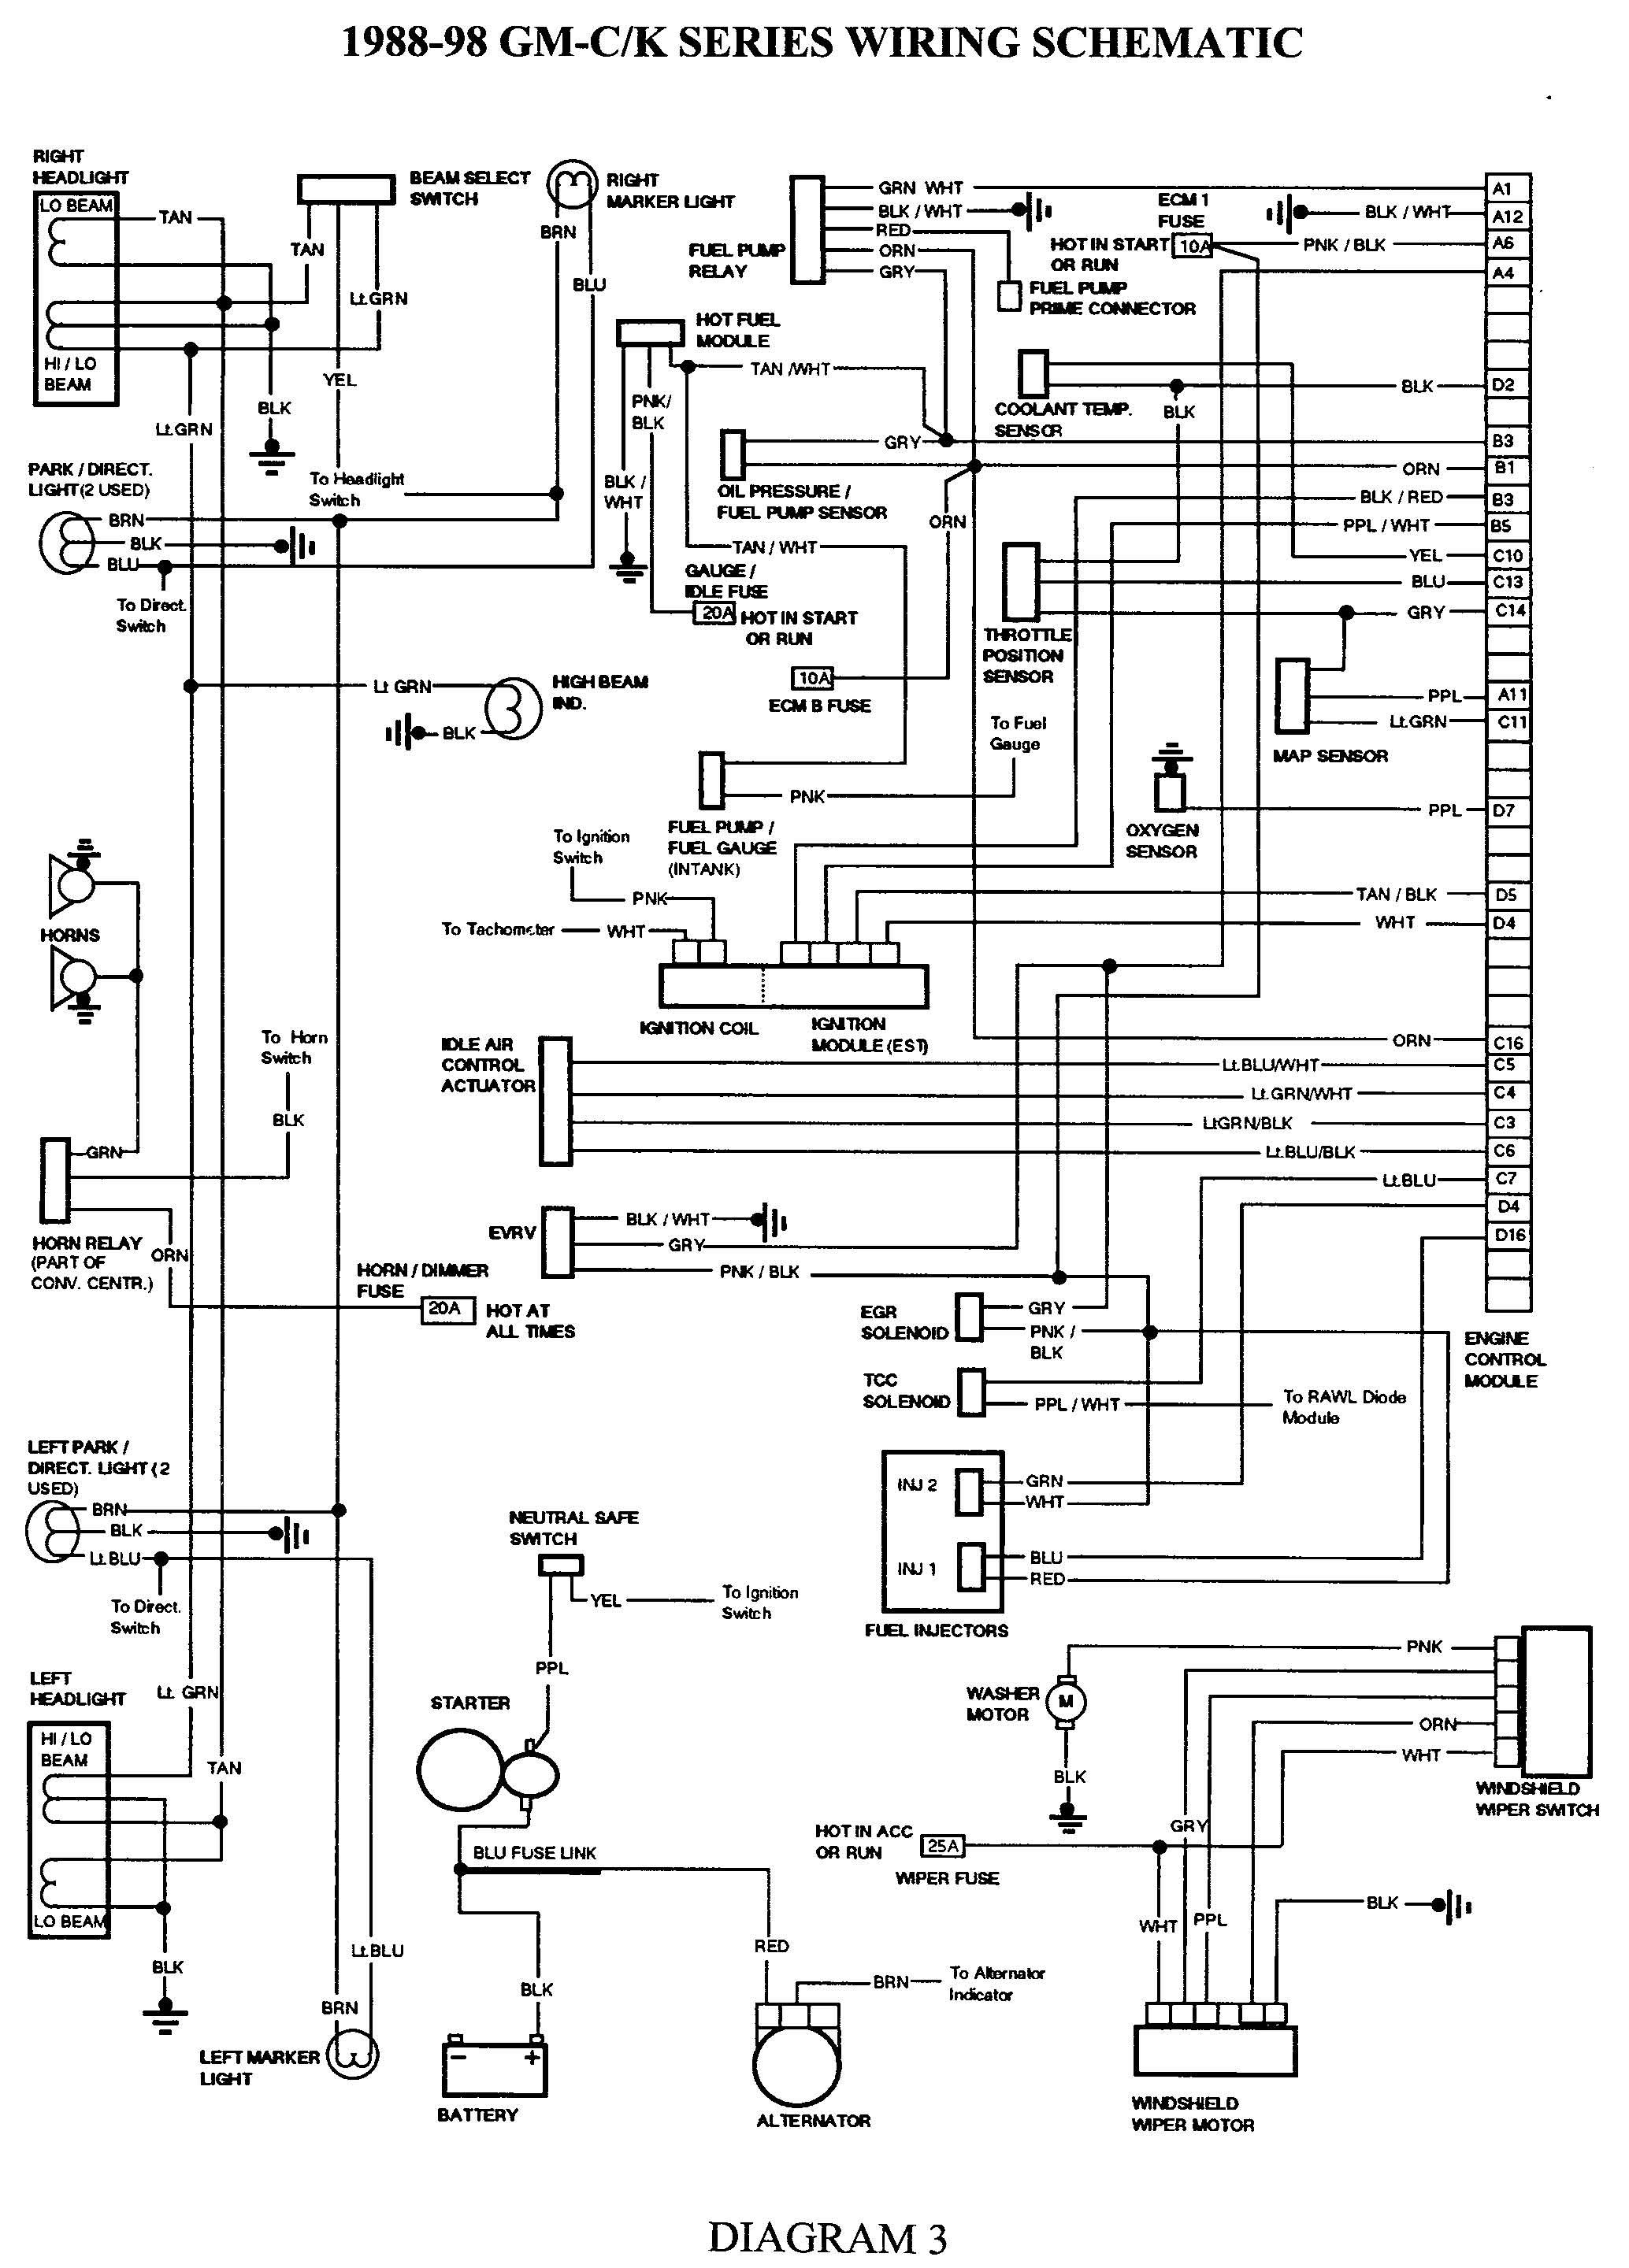 73 gmc wiring harness wiring diagram1993 chevy suburban wiring harness wiring schematic diagramgmc truck wiring diagrams on gm wiring harness diagram